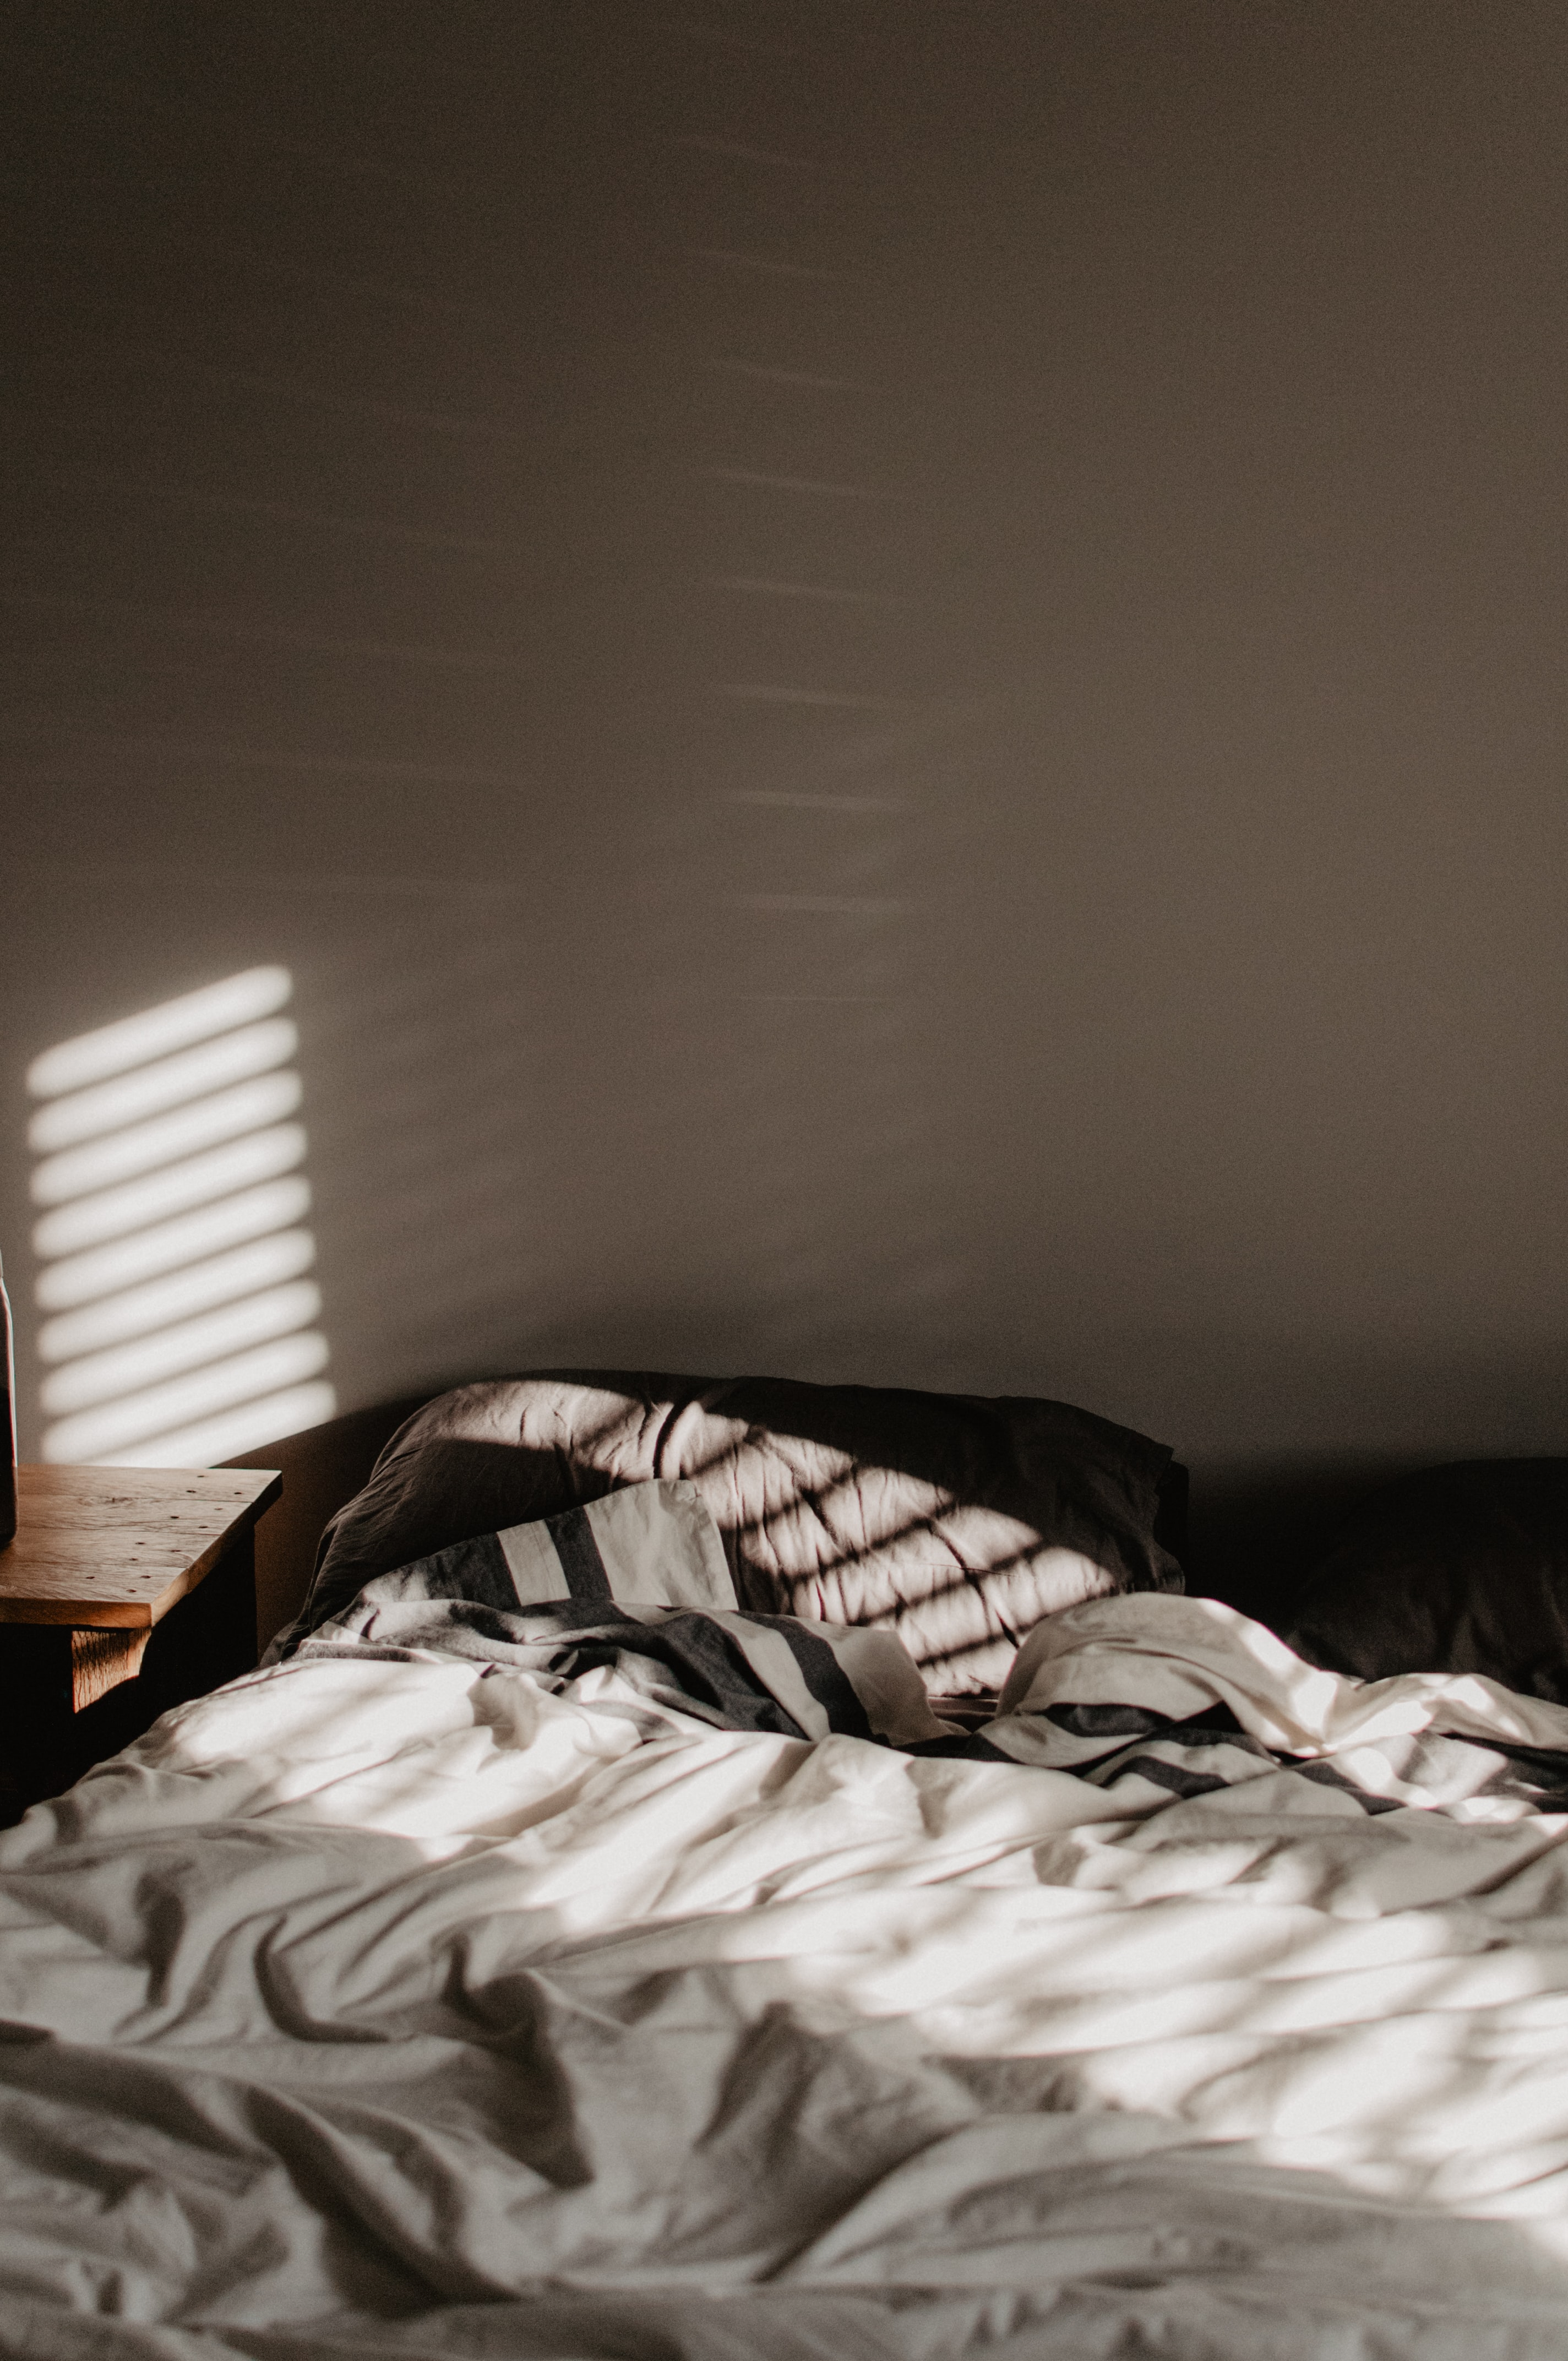 sunlight inside bed